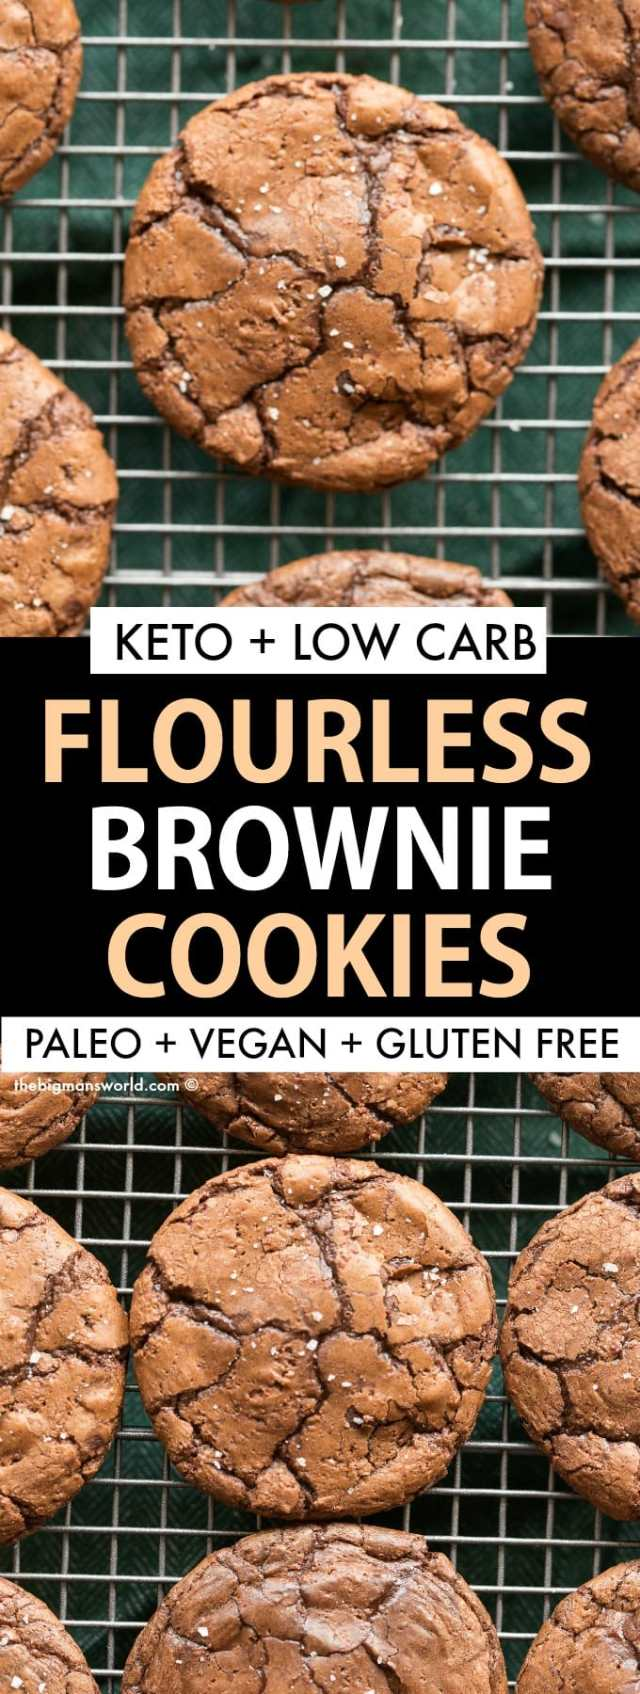 Healthy Keto and Low Carb Flourless Brownie Cookies made without sugar, without dairy and completely paleo and gluten free!